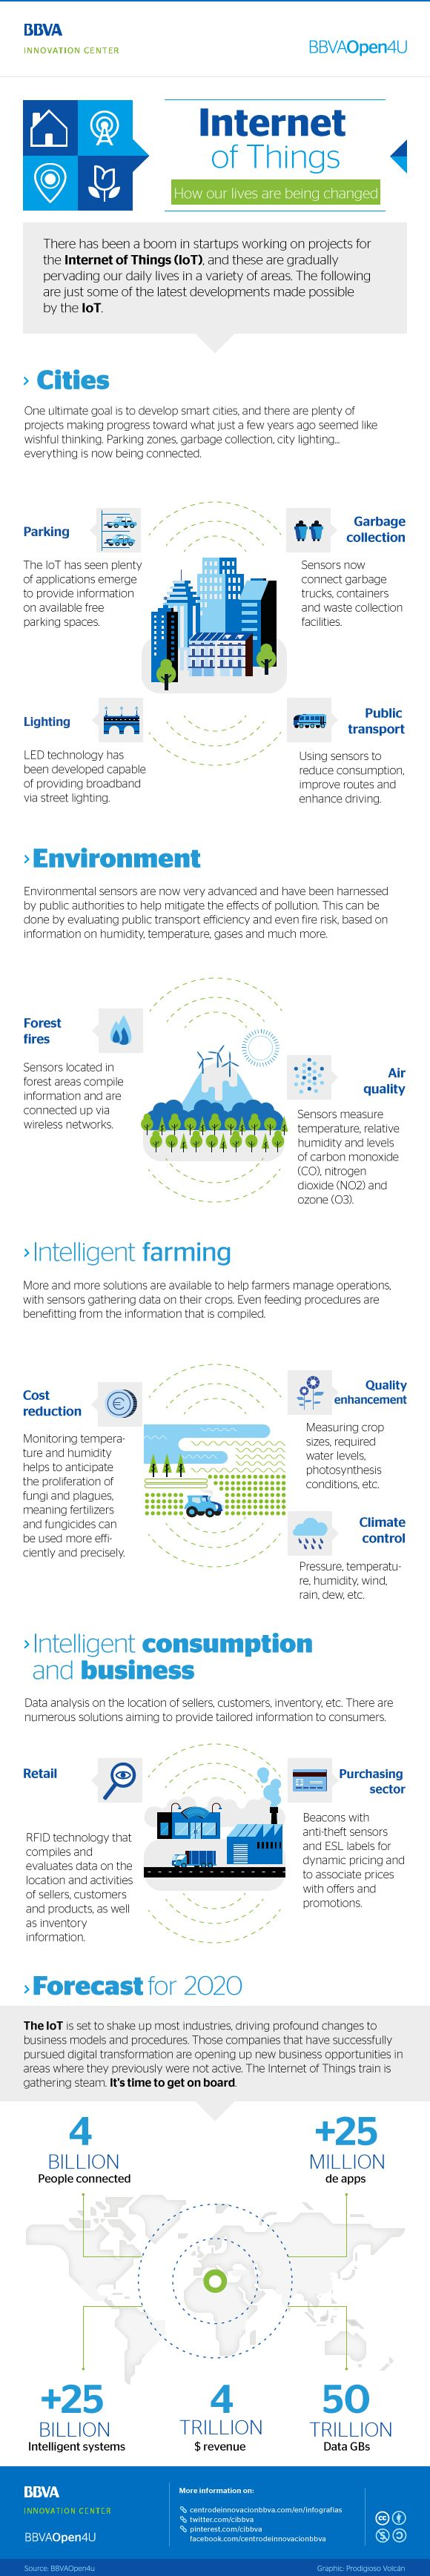 BBVA Open4u Infographic - Internet of Things: How our lives are being changed.   #BBVAinfographics #BBVA #infographics #infographic #infografías #infografía #InternetDeLasCosas #IOT #InternetOfThings #LifeStyle #tecnología #technology #tech #design #Life #Wearable #Wearables #Gadgets